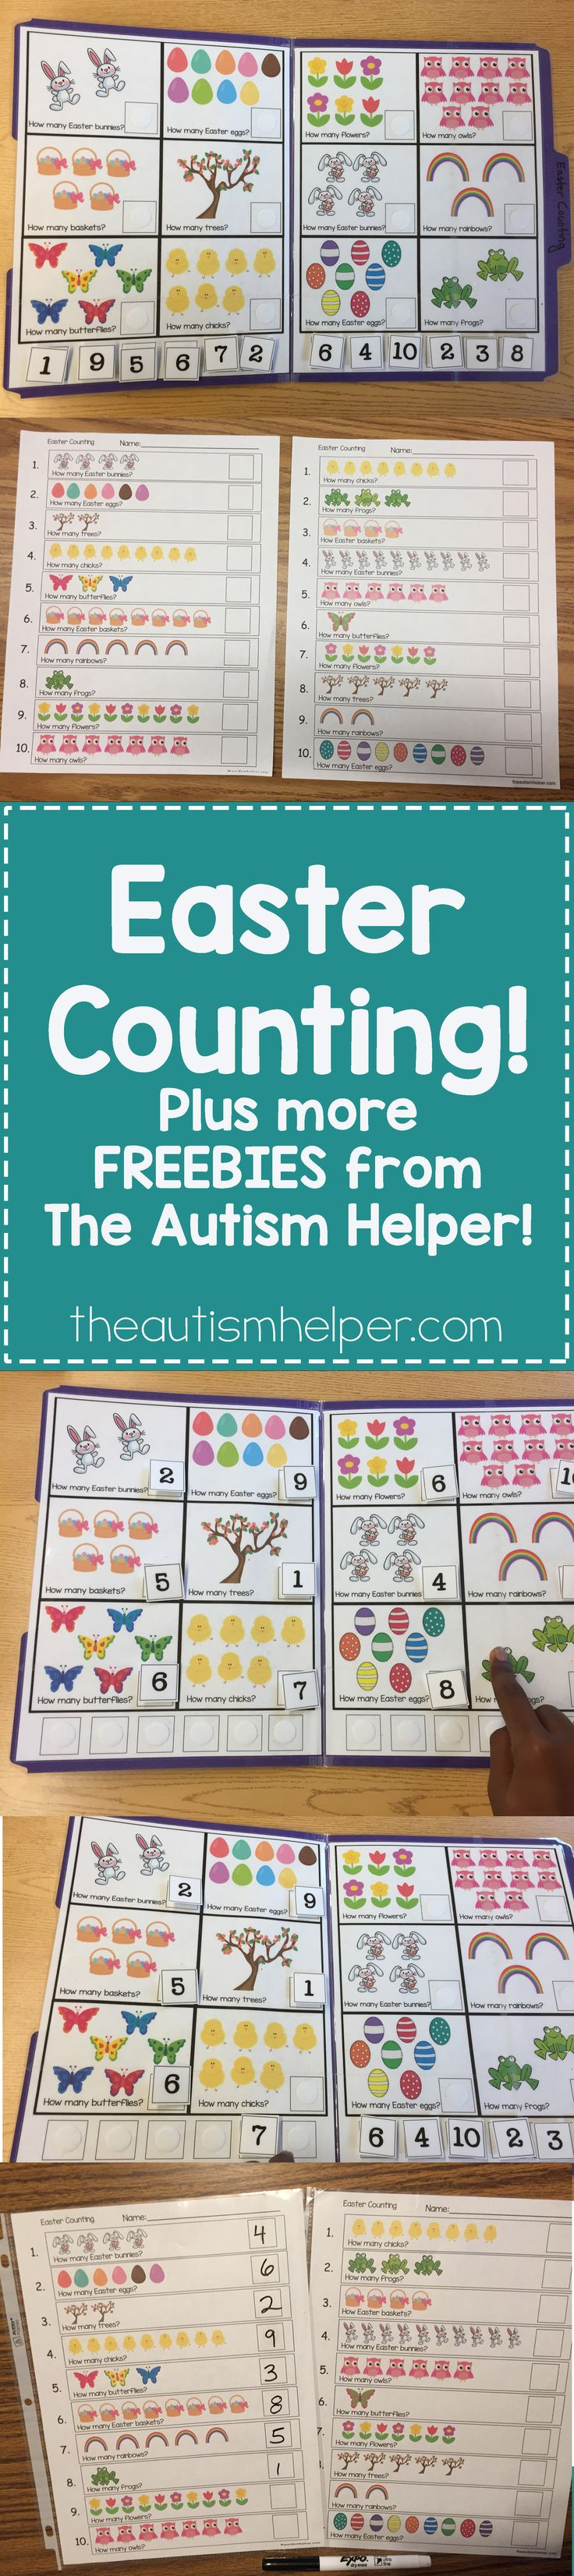 We're sharing tons of FREEBIES from Sarah the Speech Helper. Download our Easter Counting resource today!! From theautismhelper.com #theautismhelper